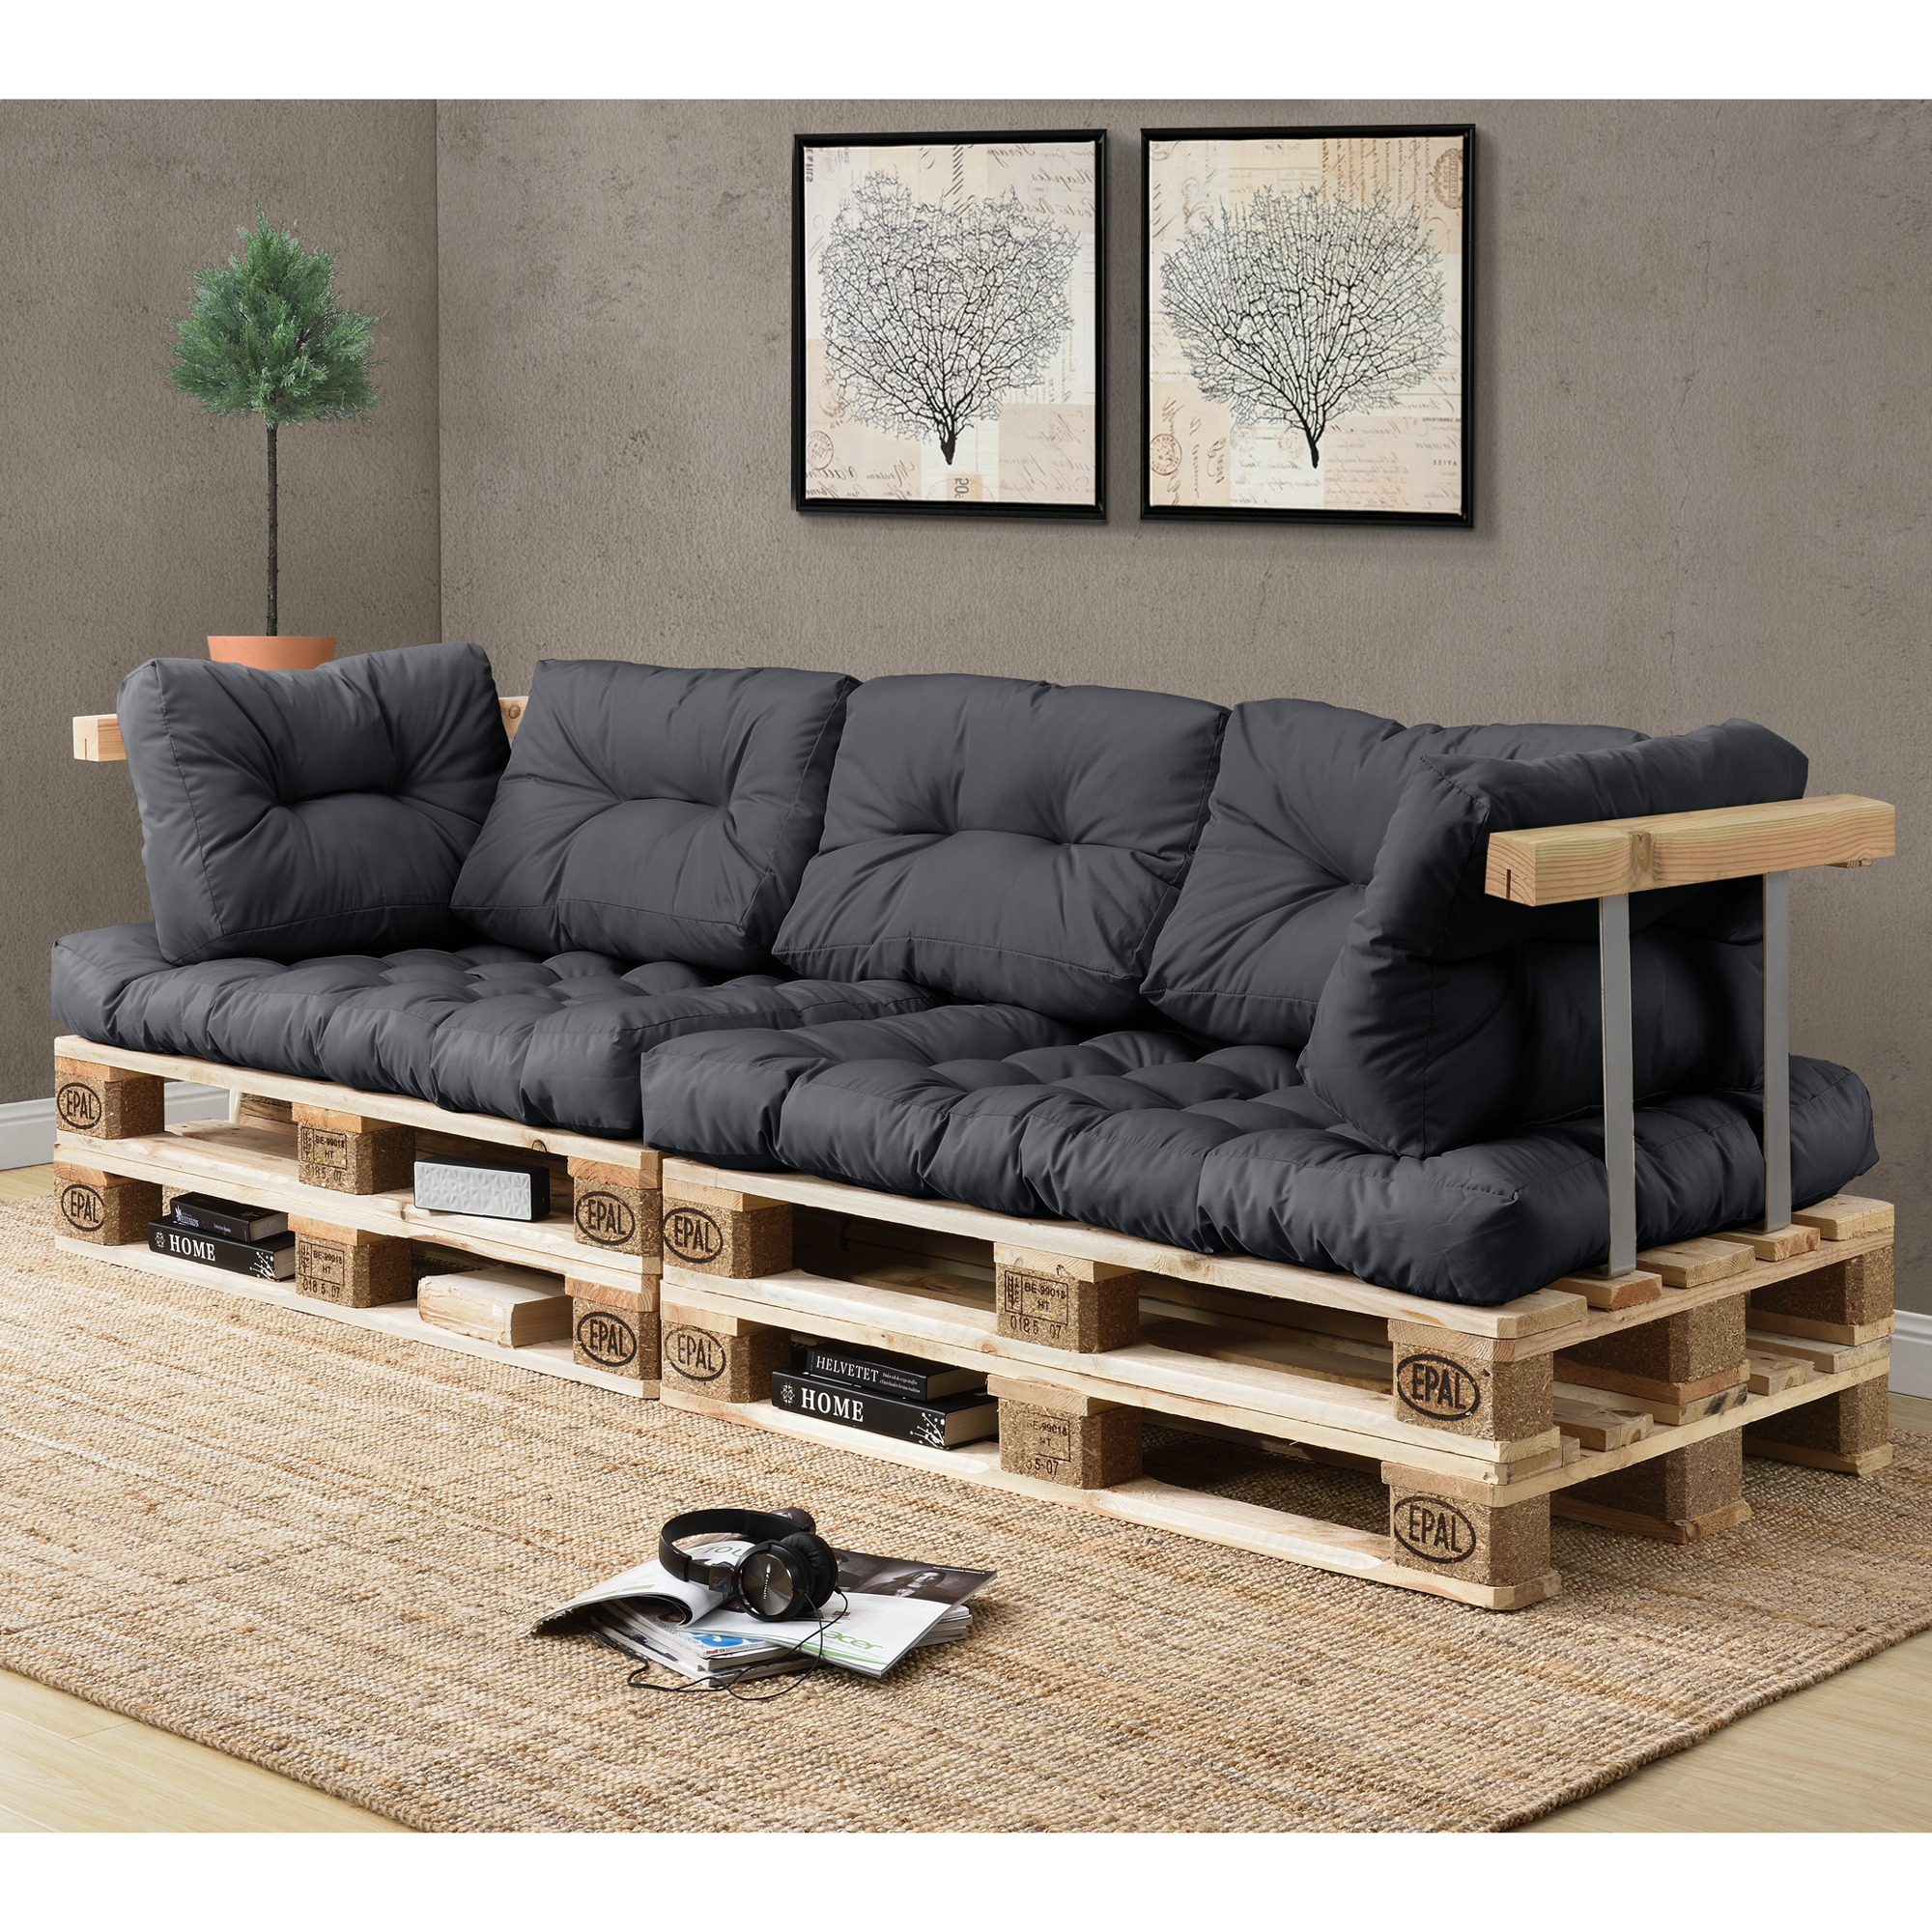 pallet cushions in outdoor pallets cushion sofa. Black Bedroom Furniture Sets. Home Design Ideas